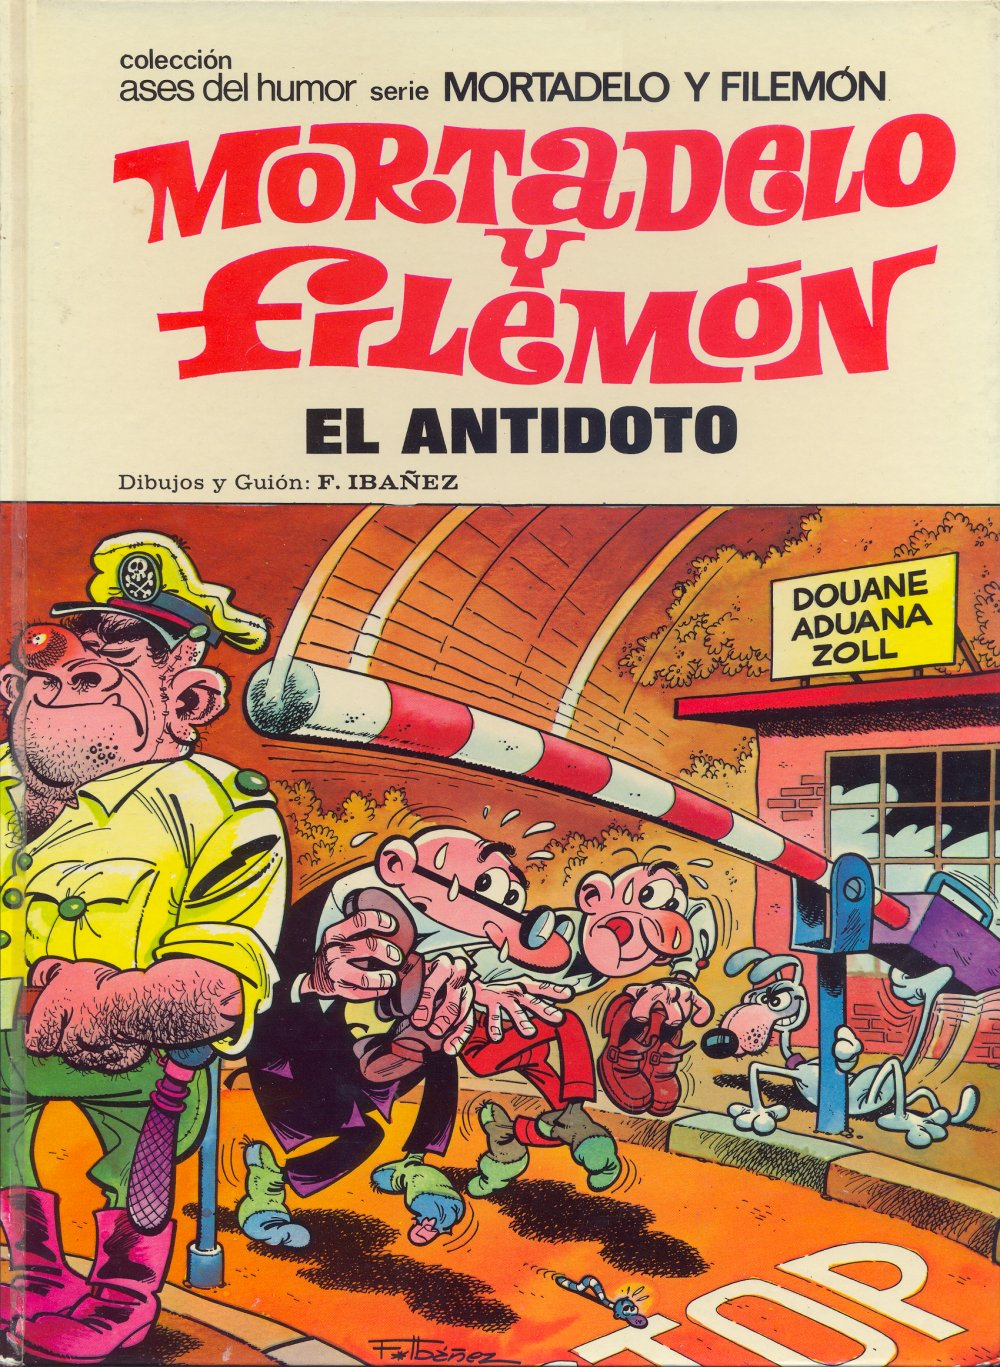 El Antídoto - Mortadelo y Filemón